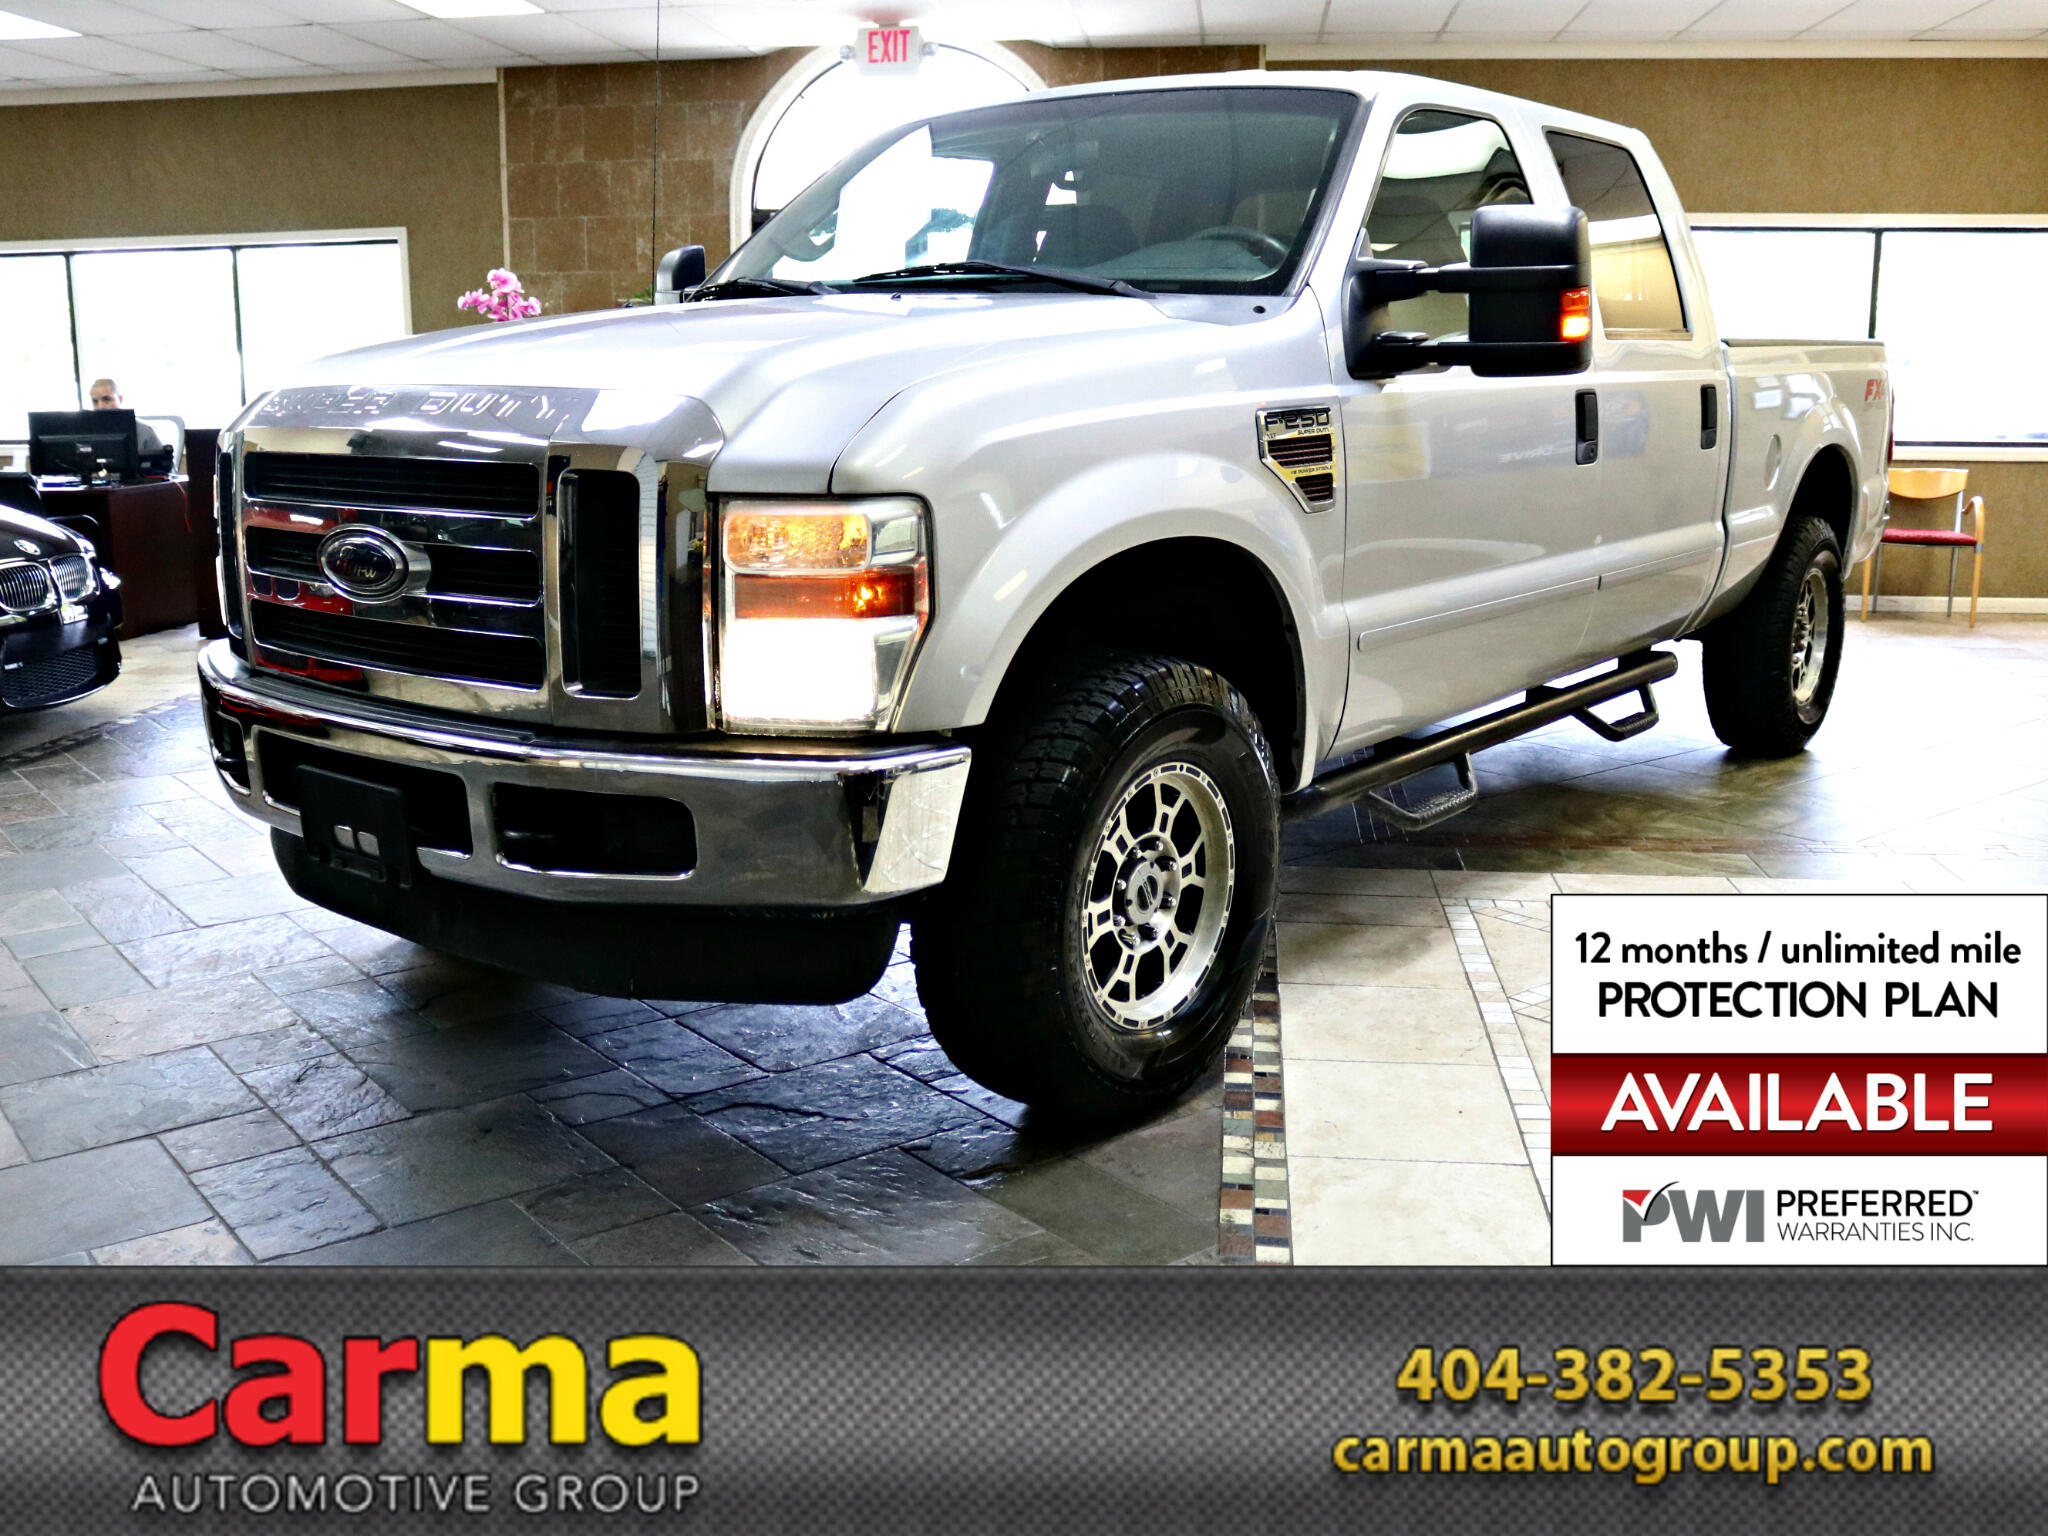 2010 Ford Super Duty F-250 4WD Crew Cab 156